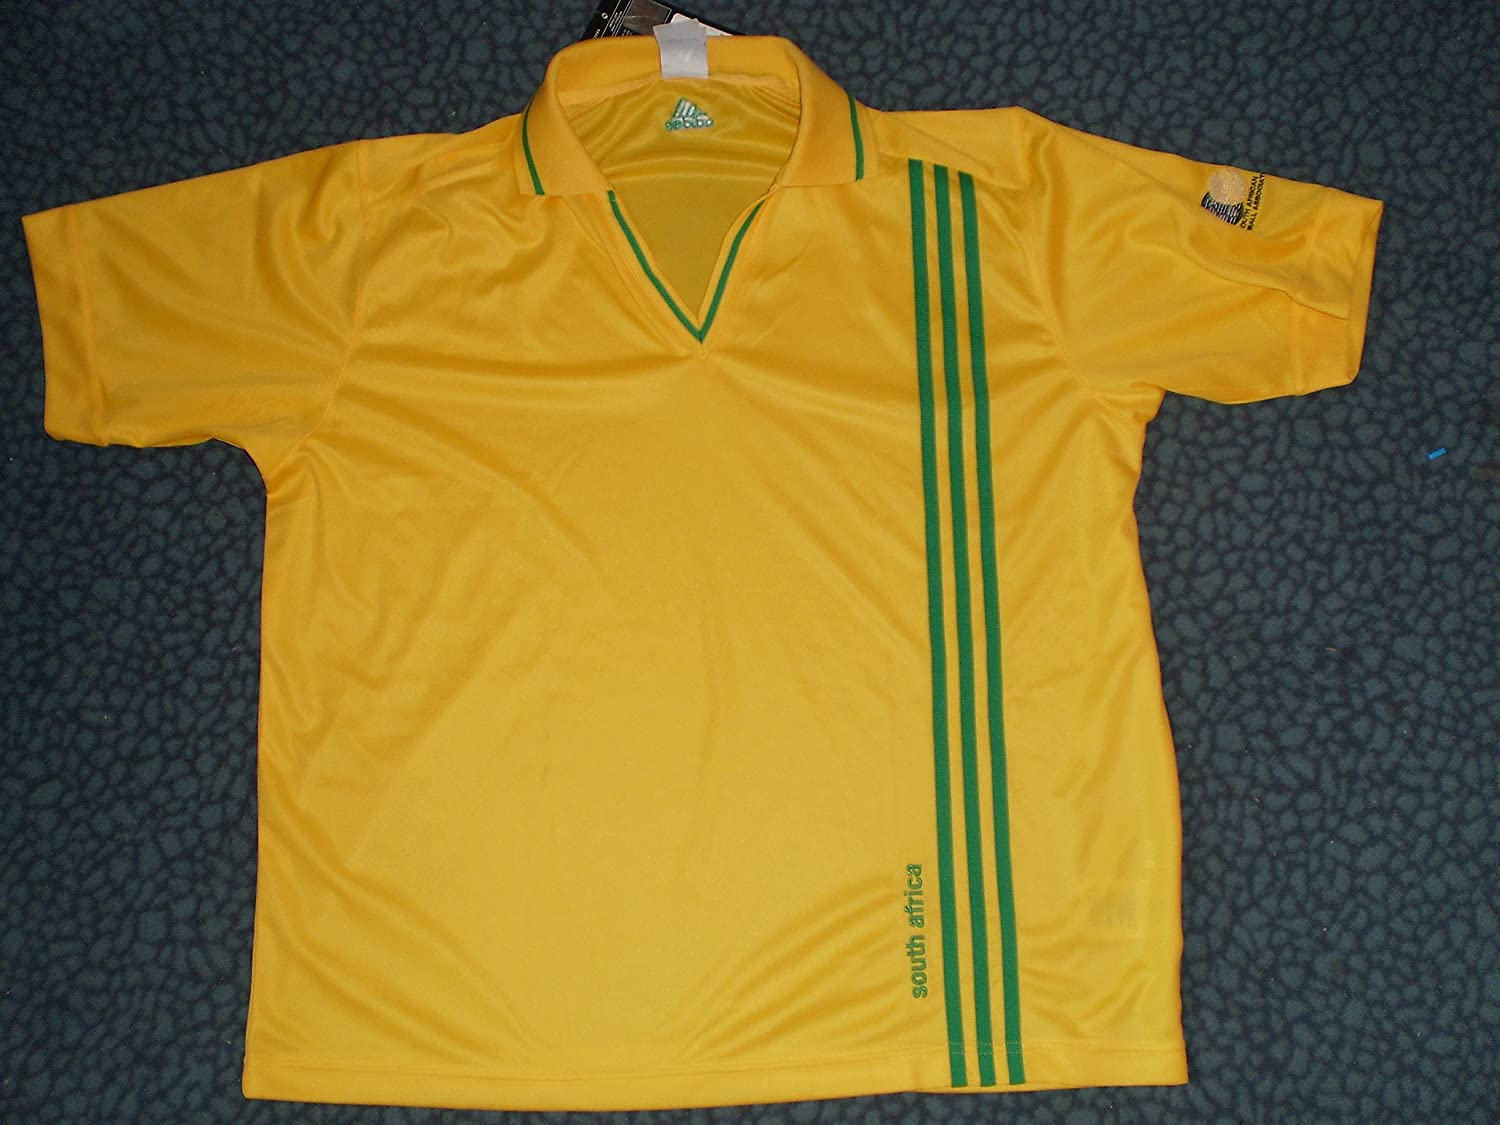 Sudáfrica South Africa Polo Adidas Talla XL: Amazon.es: Zapatos y ...